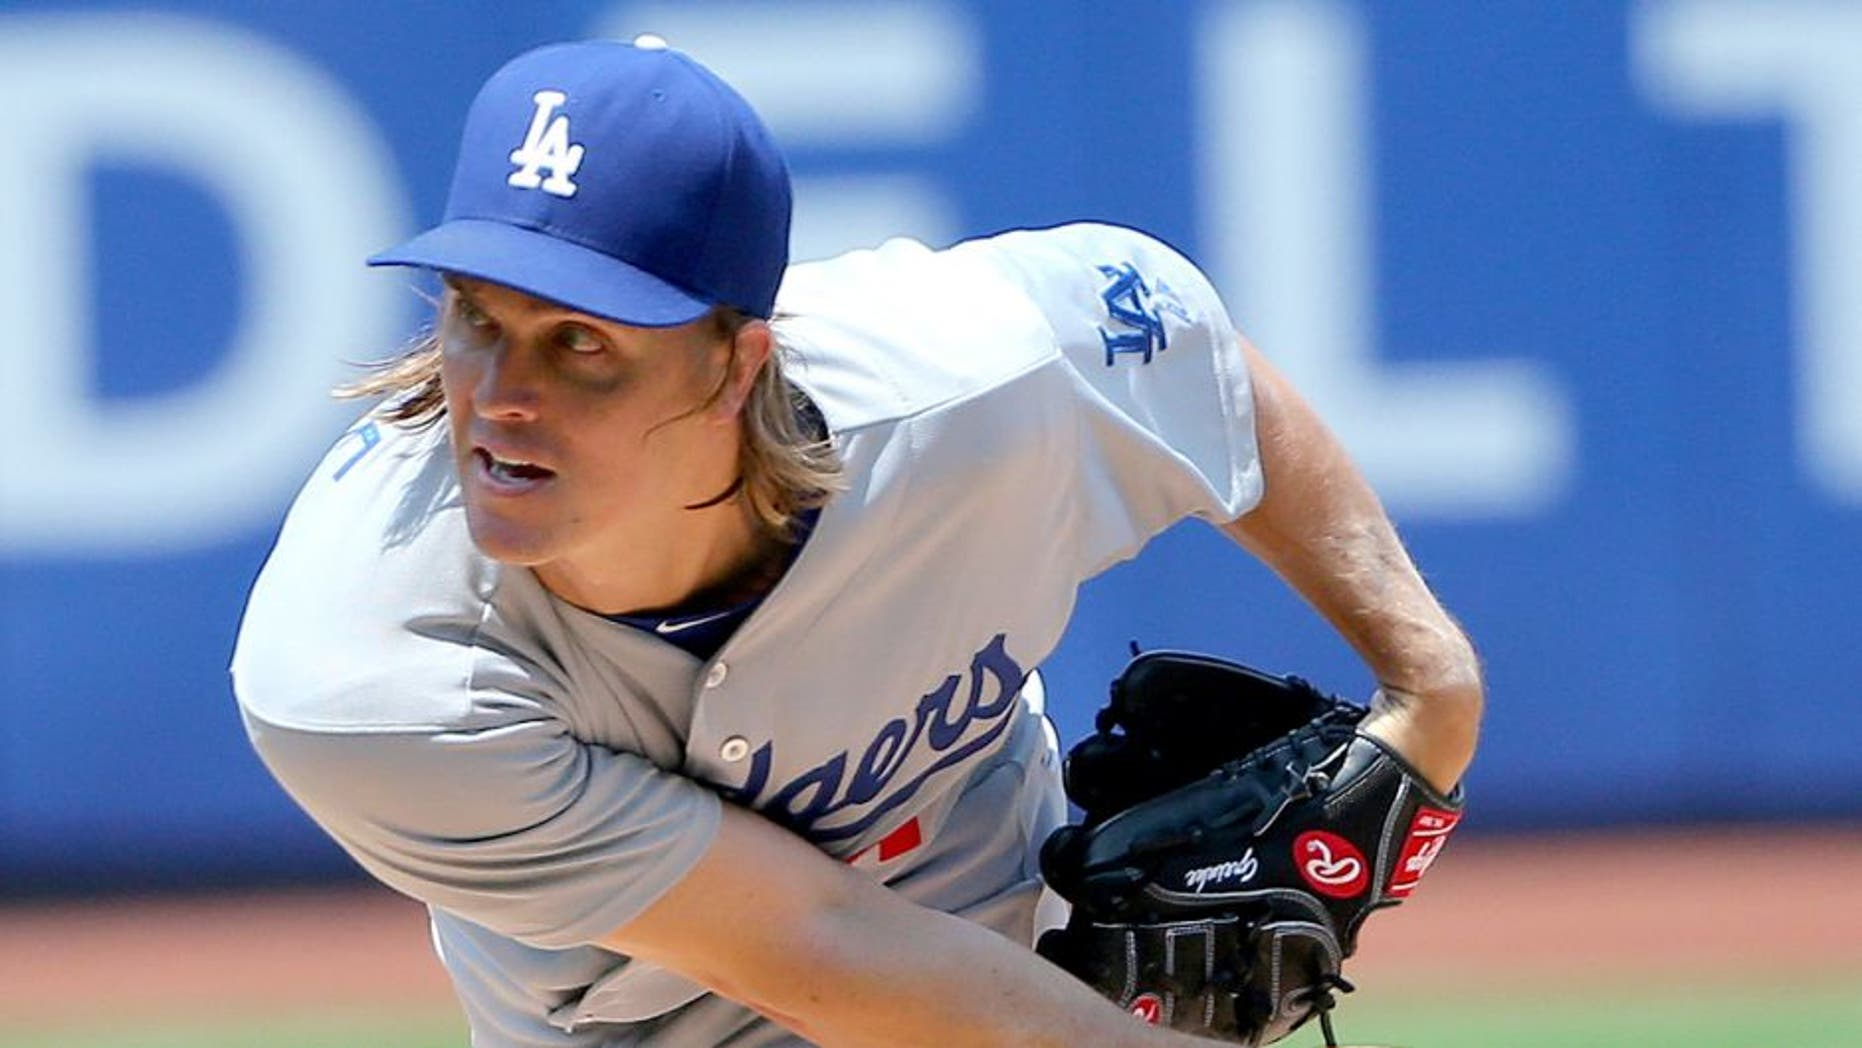 Jul 26, 2015; New York City, NY, USA; Los Angeles Dodgers starting pitcher Zack Greinke (21) pitches during the first inning against the New York Mets at Citi Field. Mandatory Credit: Anthony Gruppuso-USA TODAY Sports